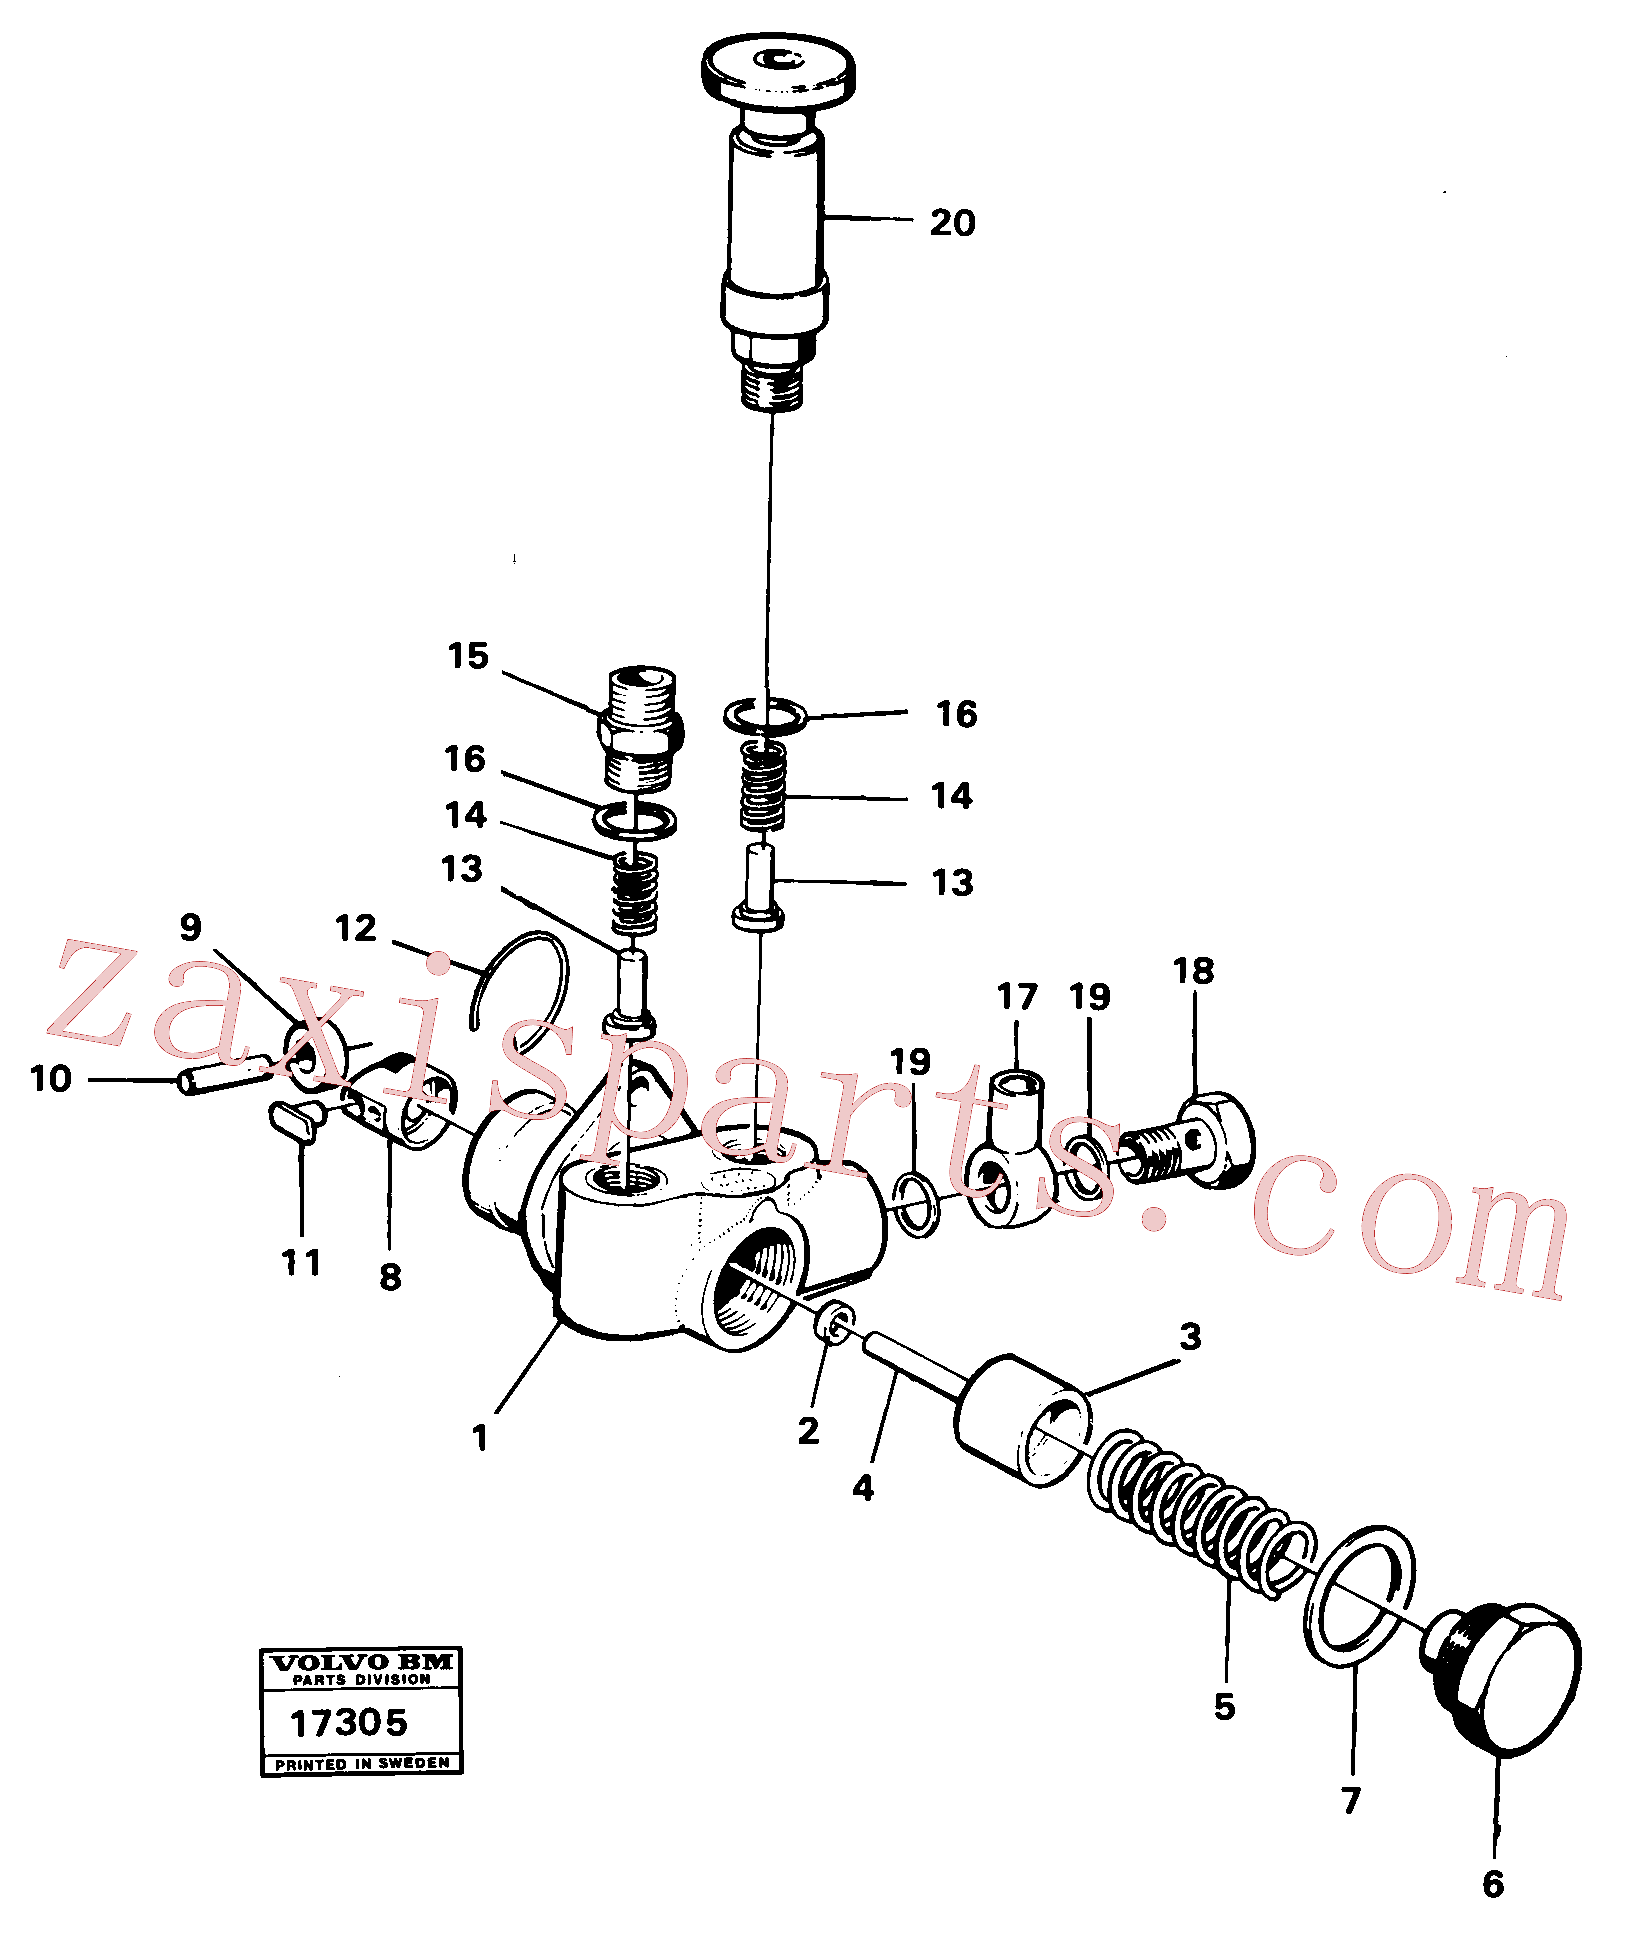 ZM2906935 for Volvo Feed pump mo 59800-, Feed pump prod no 16307(17305 assembly)